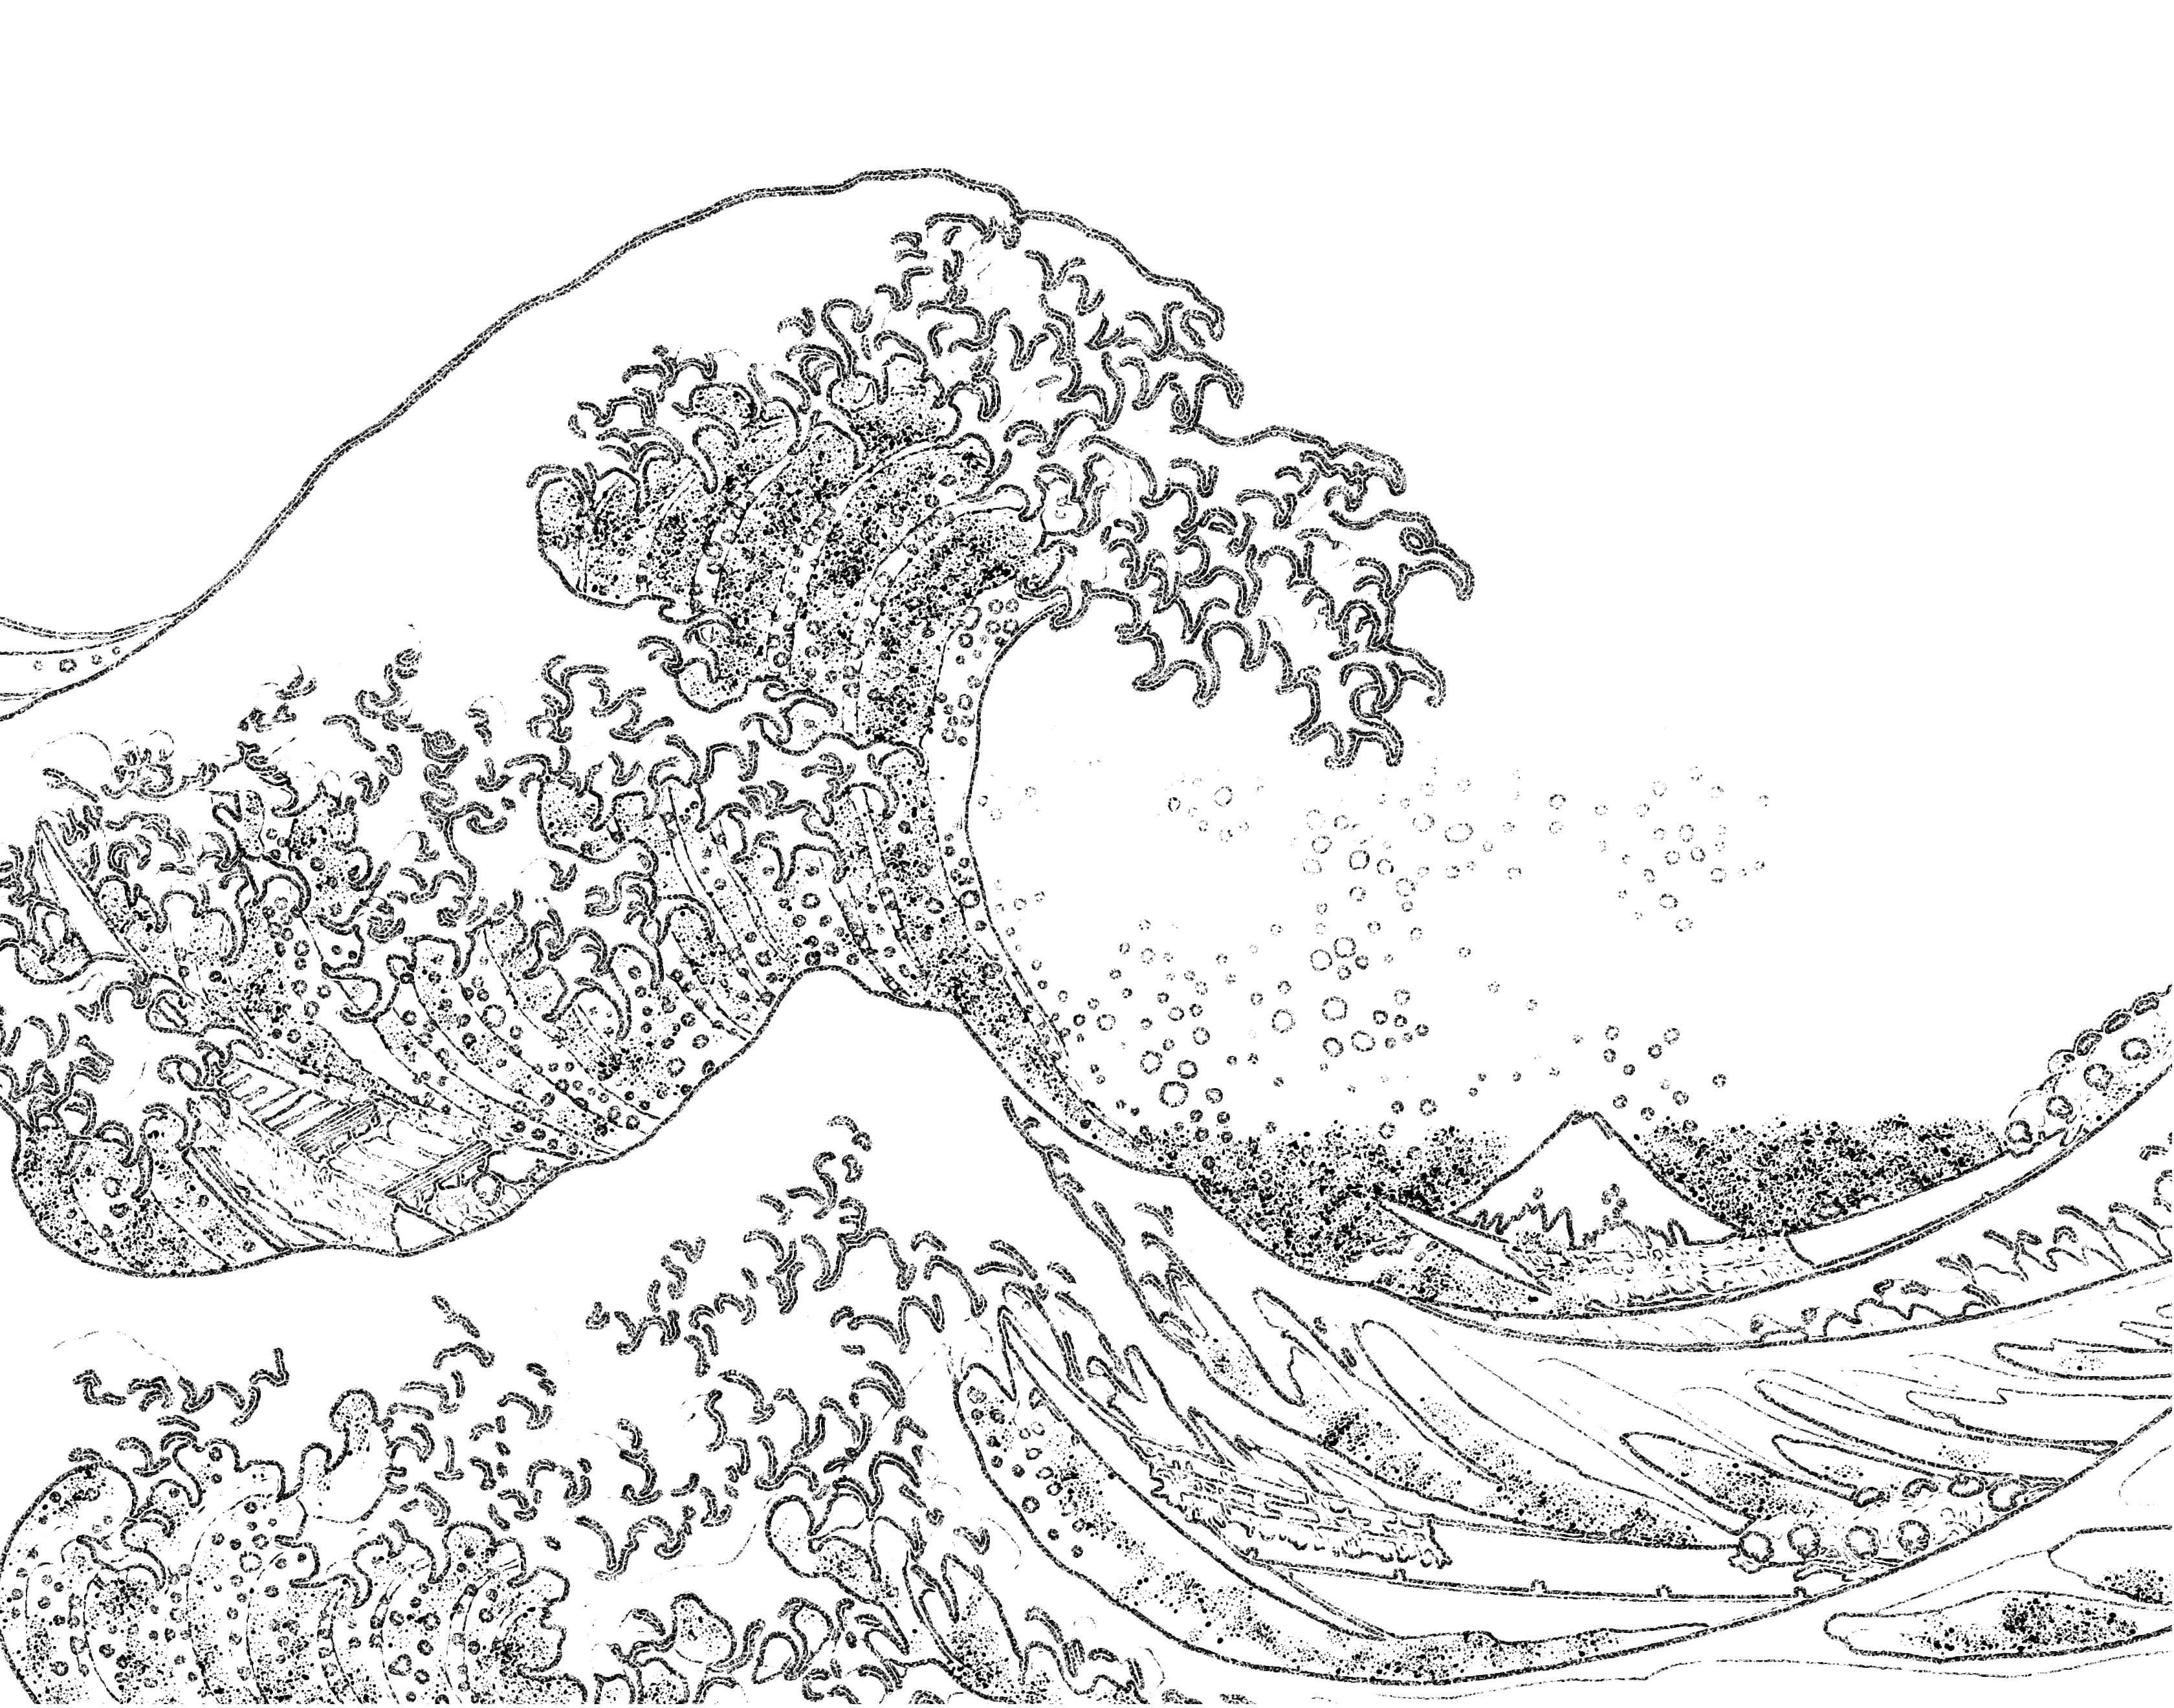 waves coloring pages hokusai waves colouring pages | the wave lesson | Coloring pages  waves coloring pages